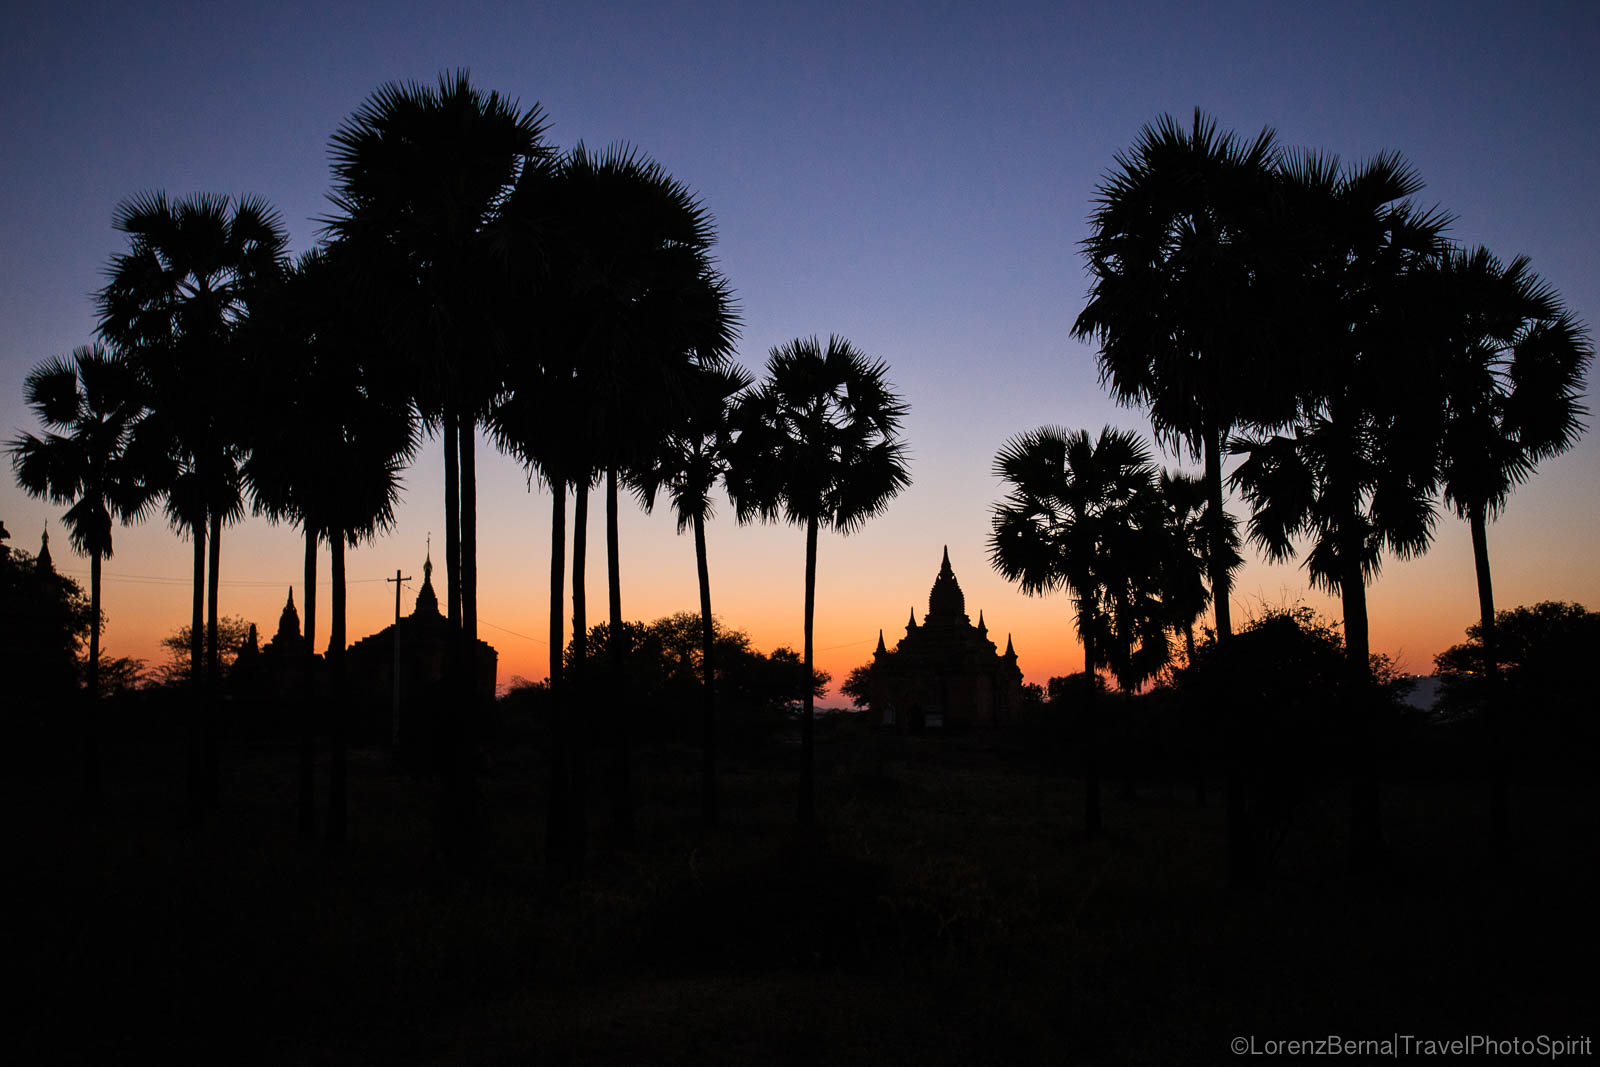 Silhouettes of pagodas and tall palms in Bagan, at dusk.